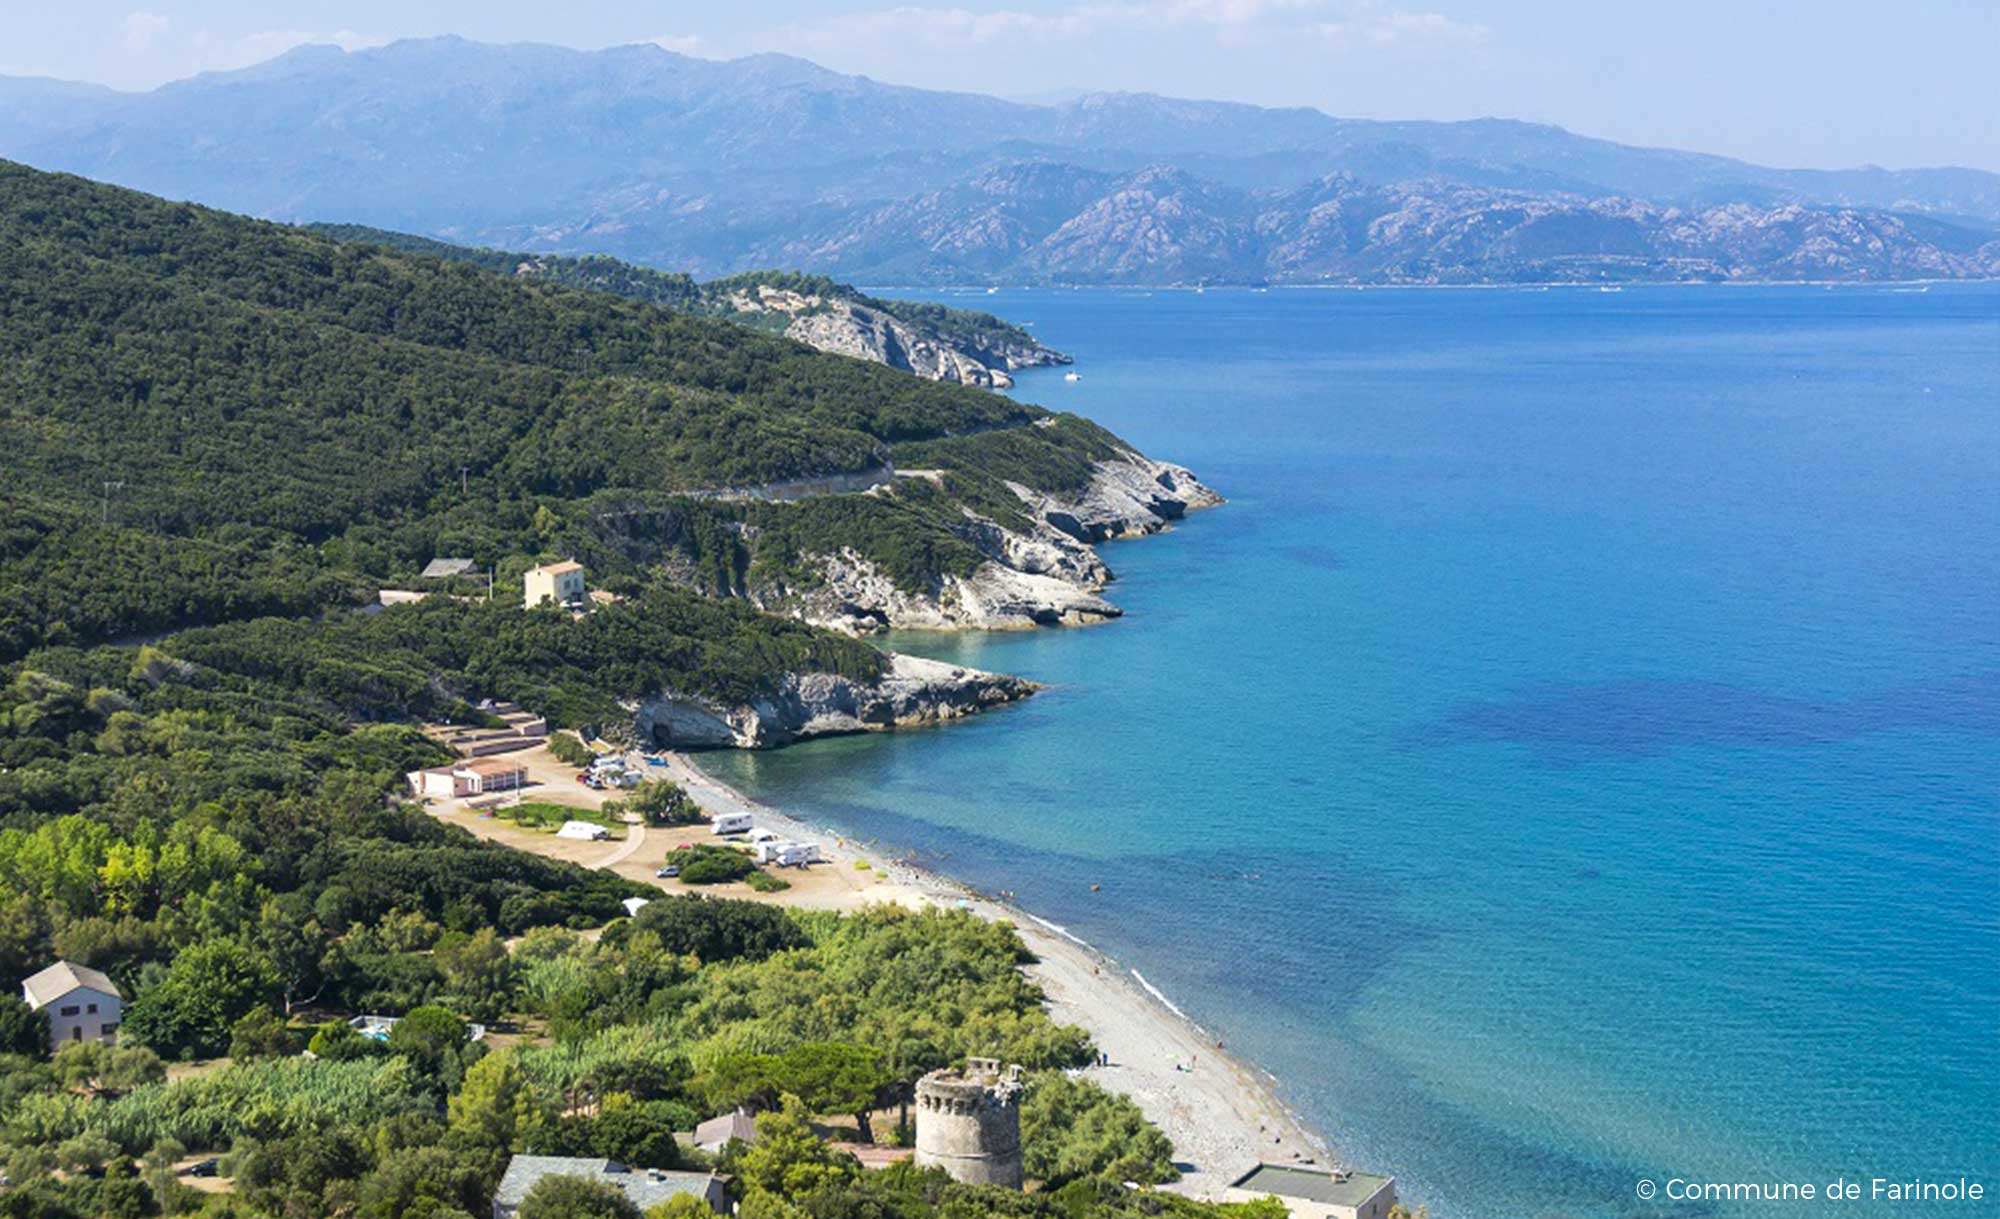 Vacation rentals in Farinole in Cap Corse, near Saint-Florent - Marine de Farinole